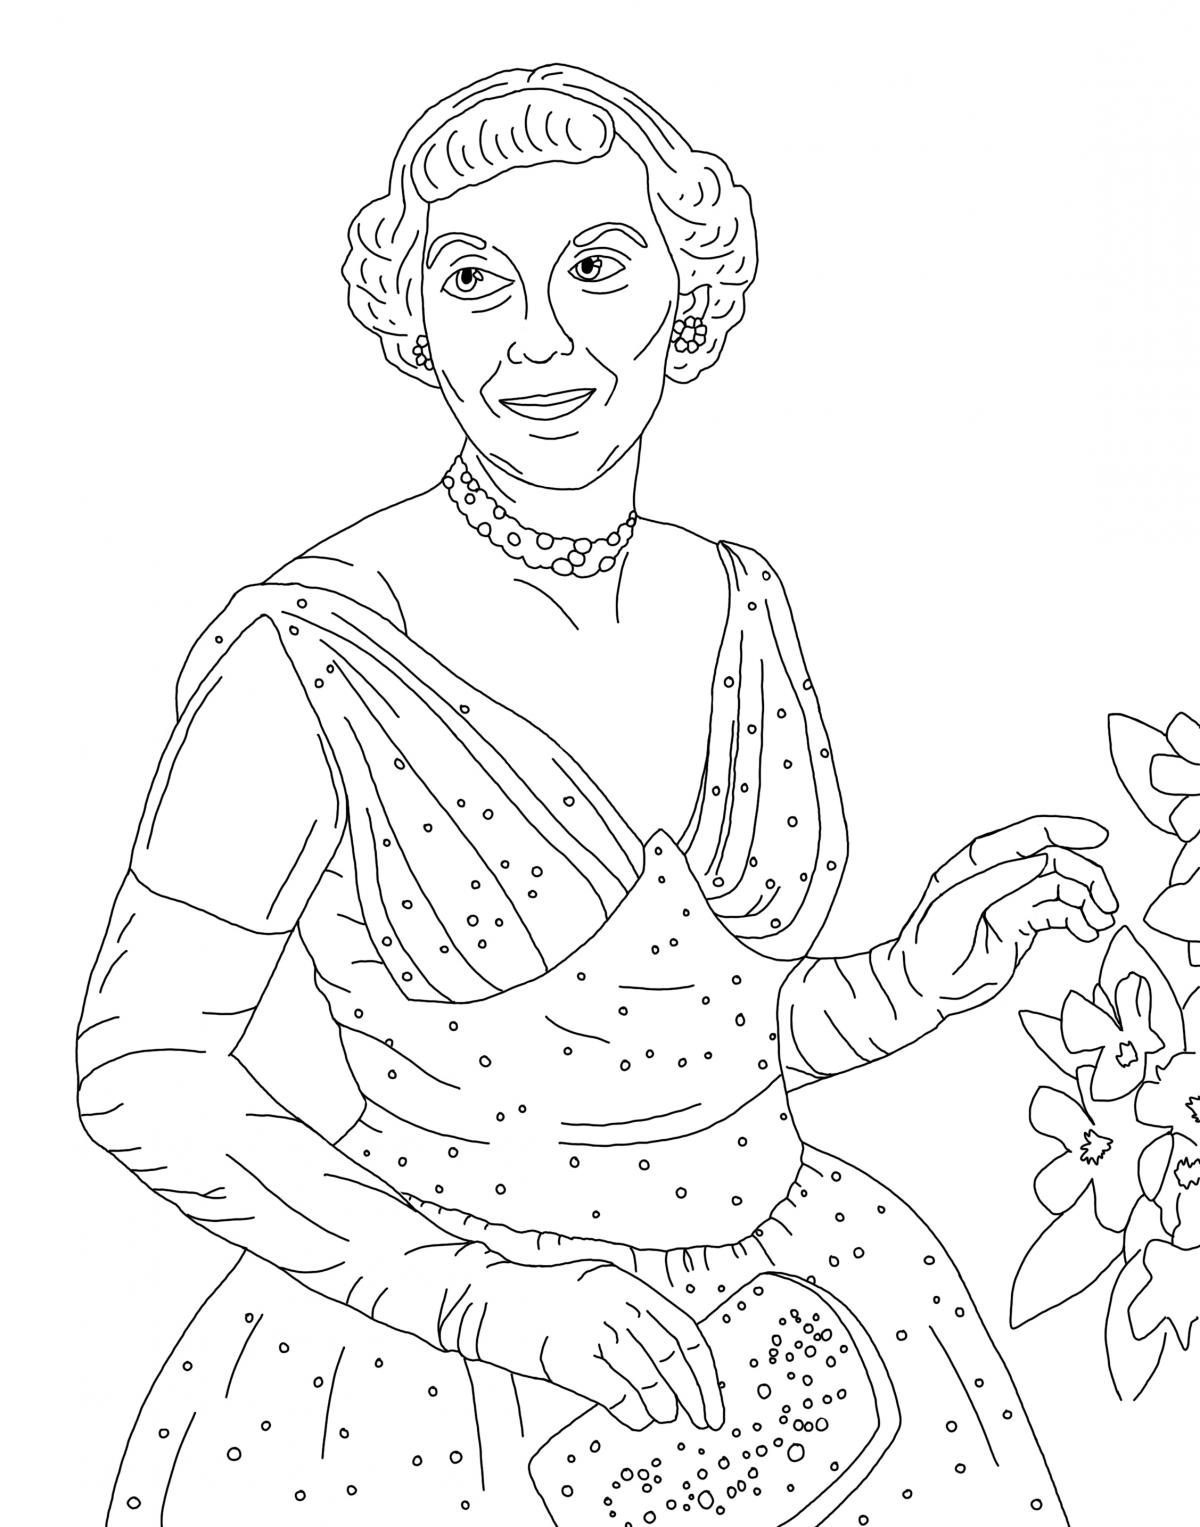 62-91 coloring page image